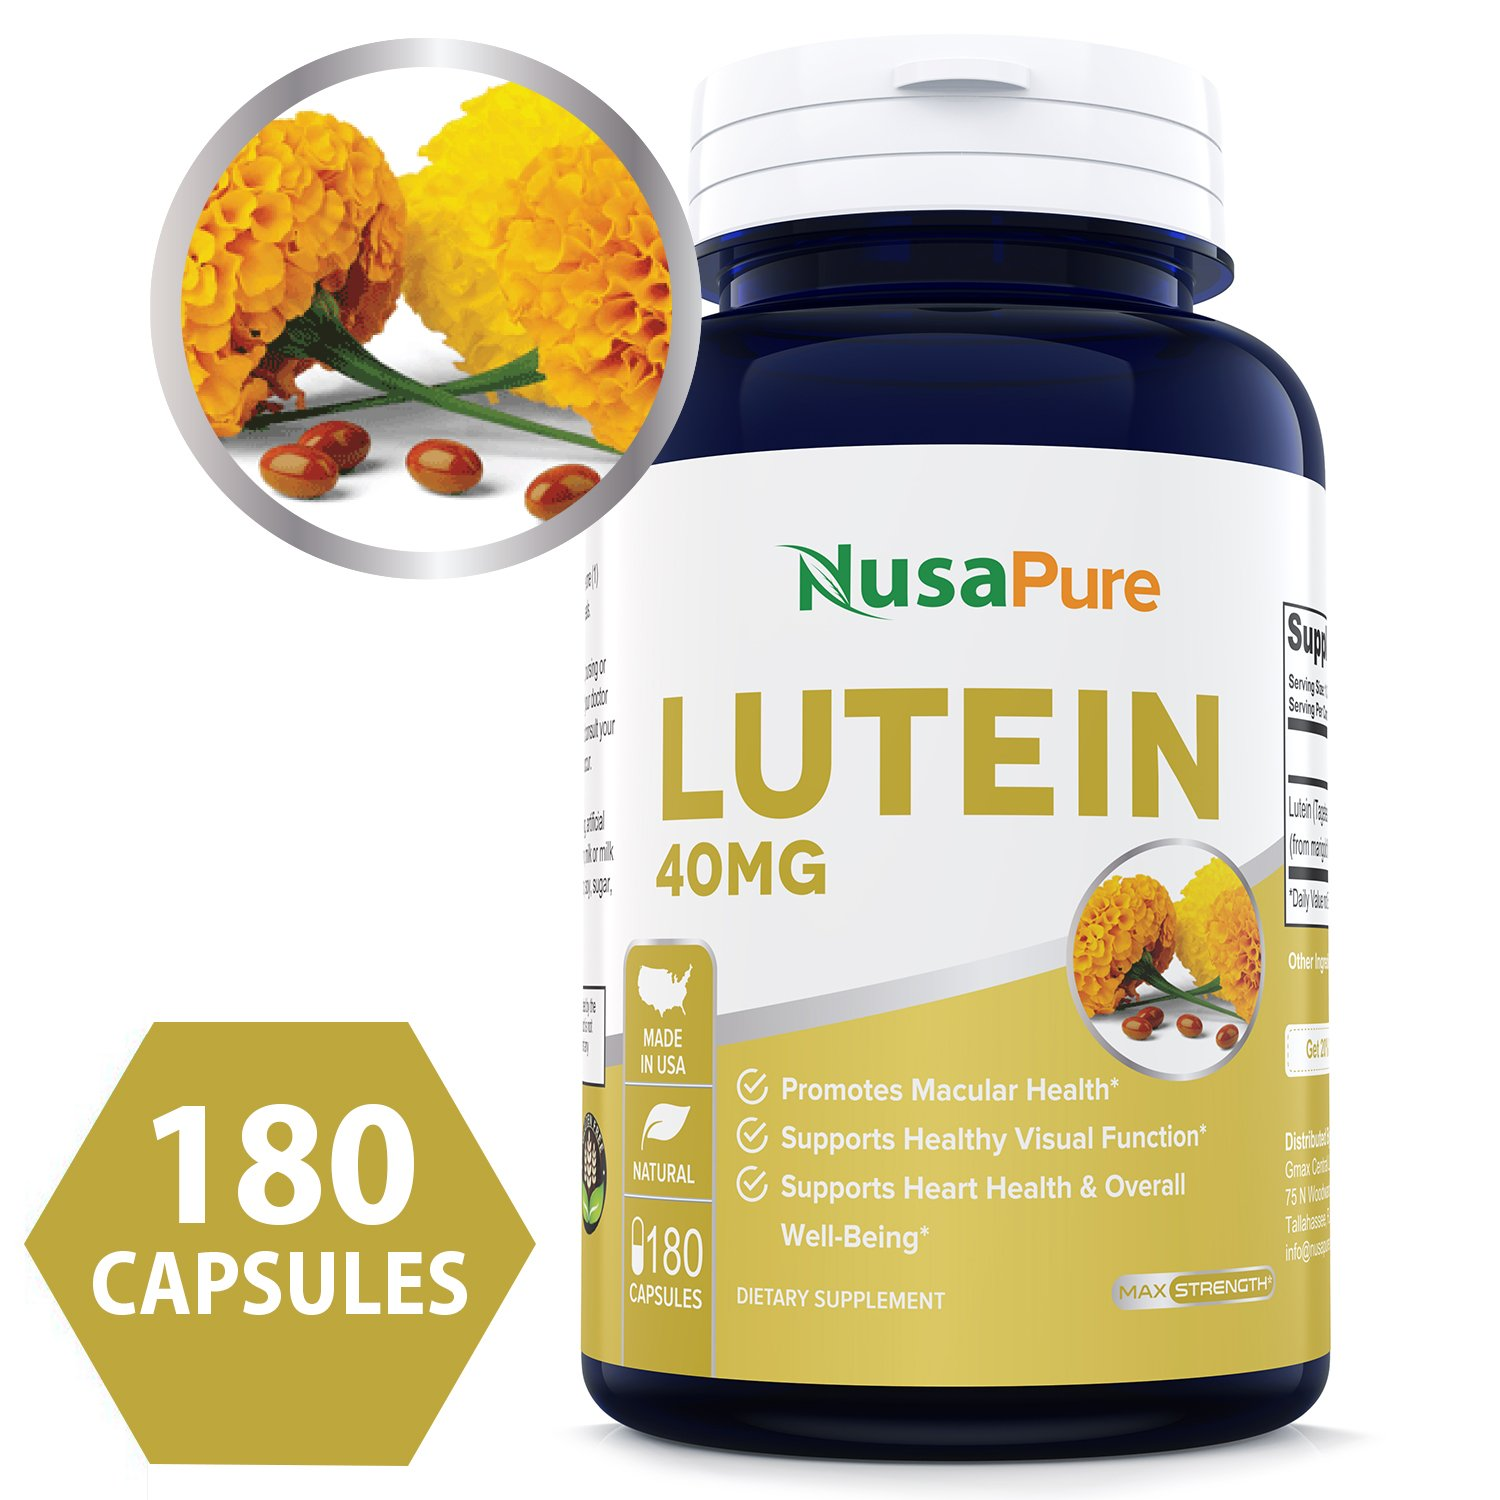 Best Lutein 40mg 180 capsules (NON-GMO & Gluten Free) Vision Support Supplement for Dry Eyes & Vision Health Care - Proudly Made in the USA - 100% MONEY BACK GUARANTEE!